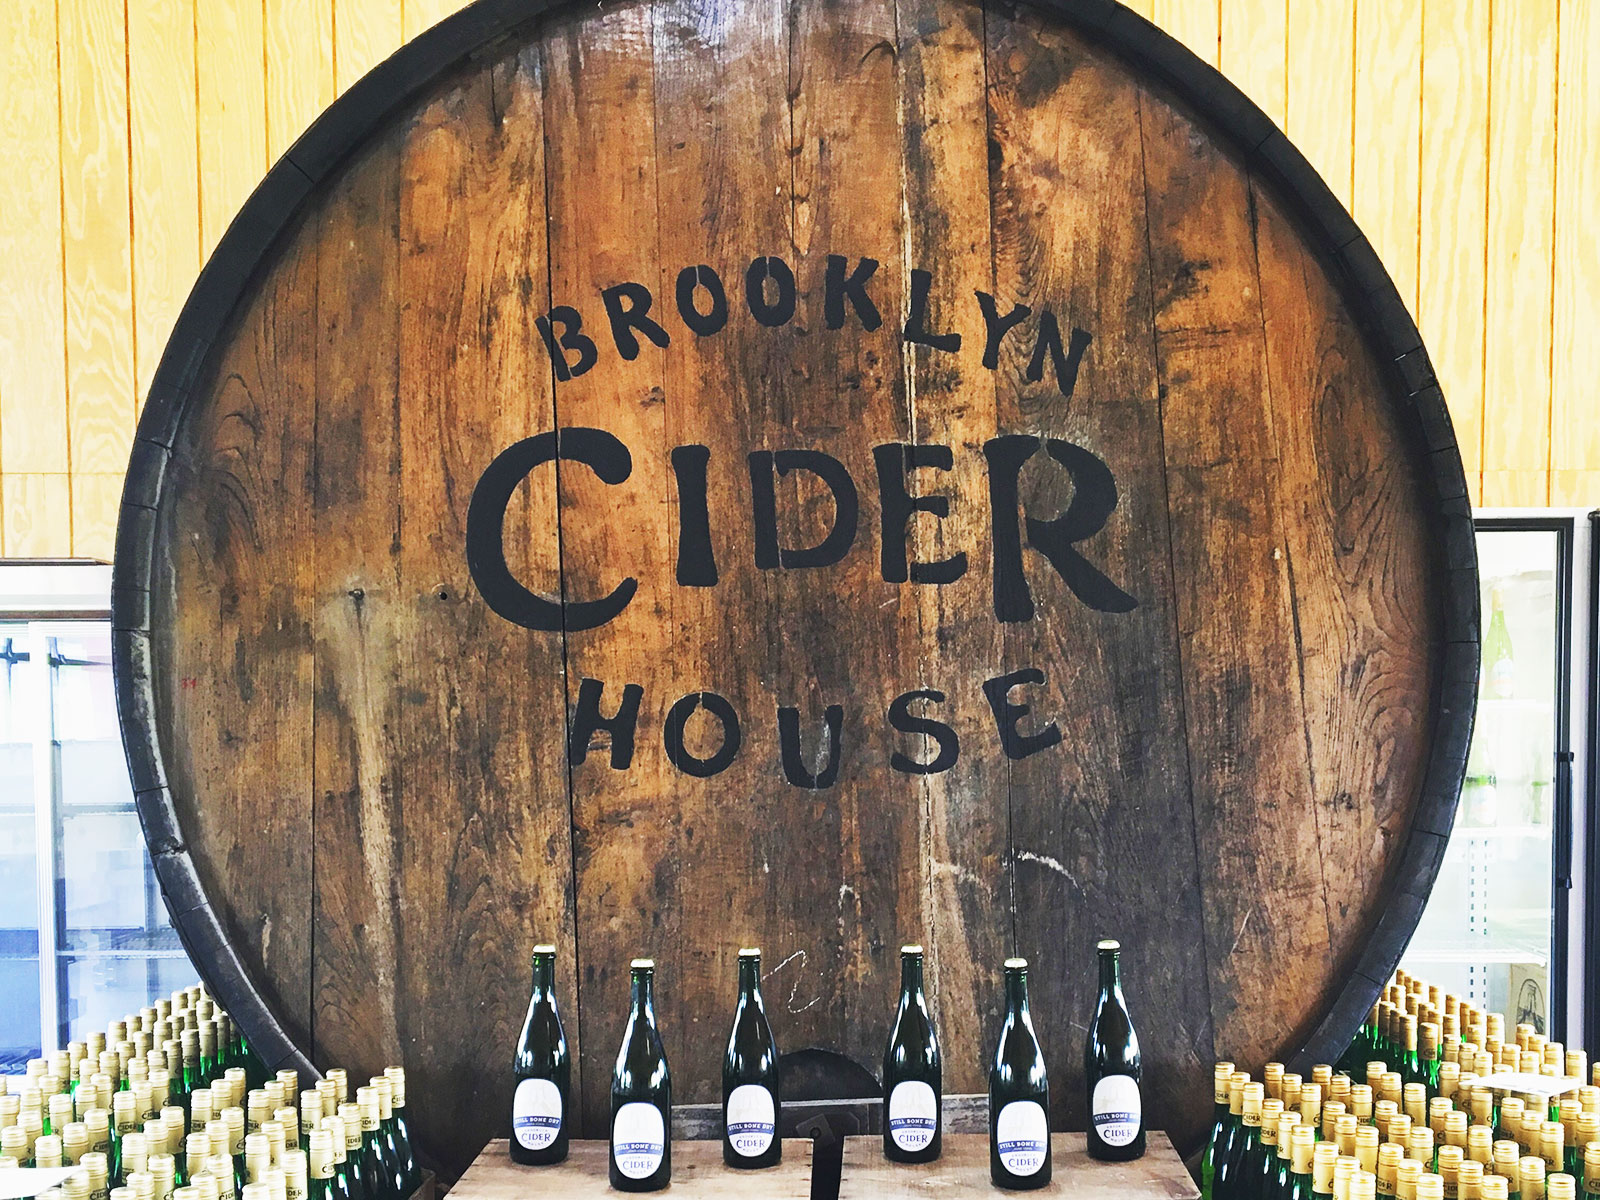 brooklyn cider house in bushwick